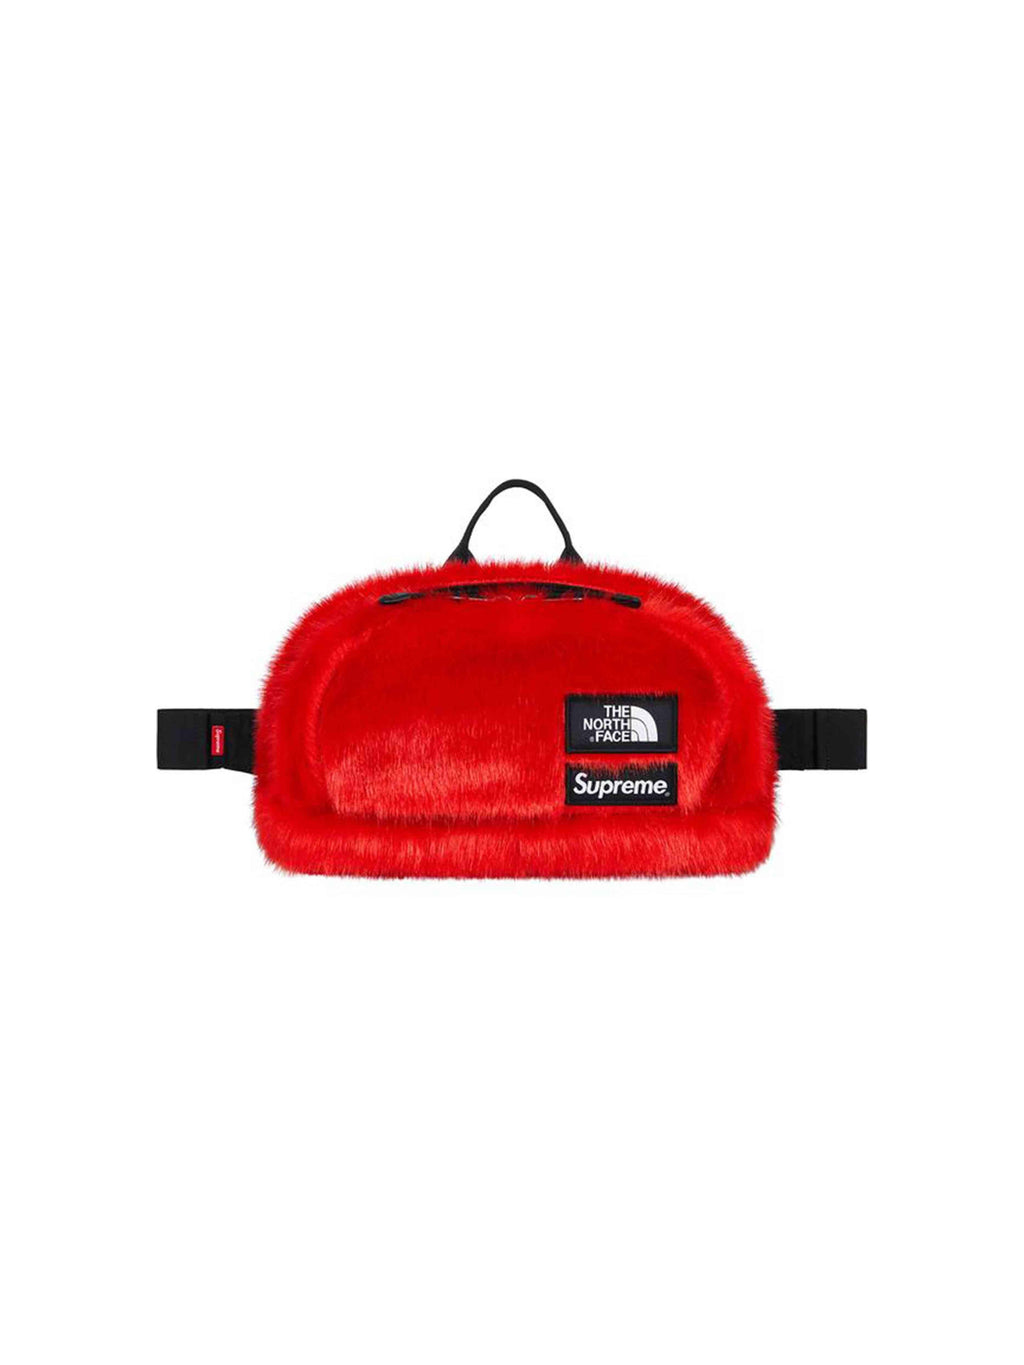 Supreme X The North Face Faux Fur Waist Bag Red - PRIOR